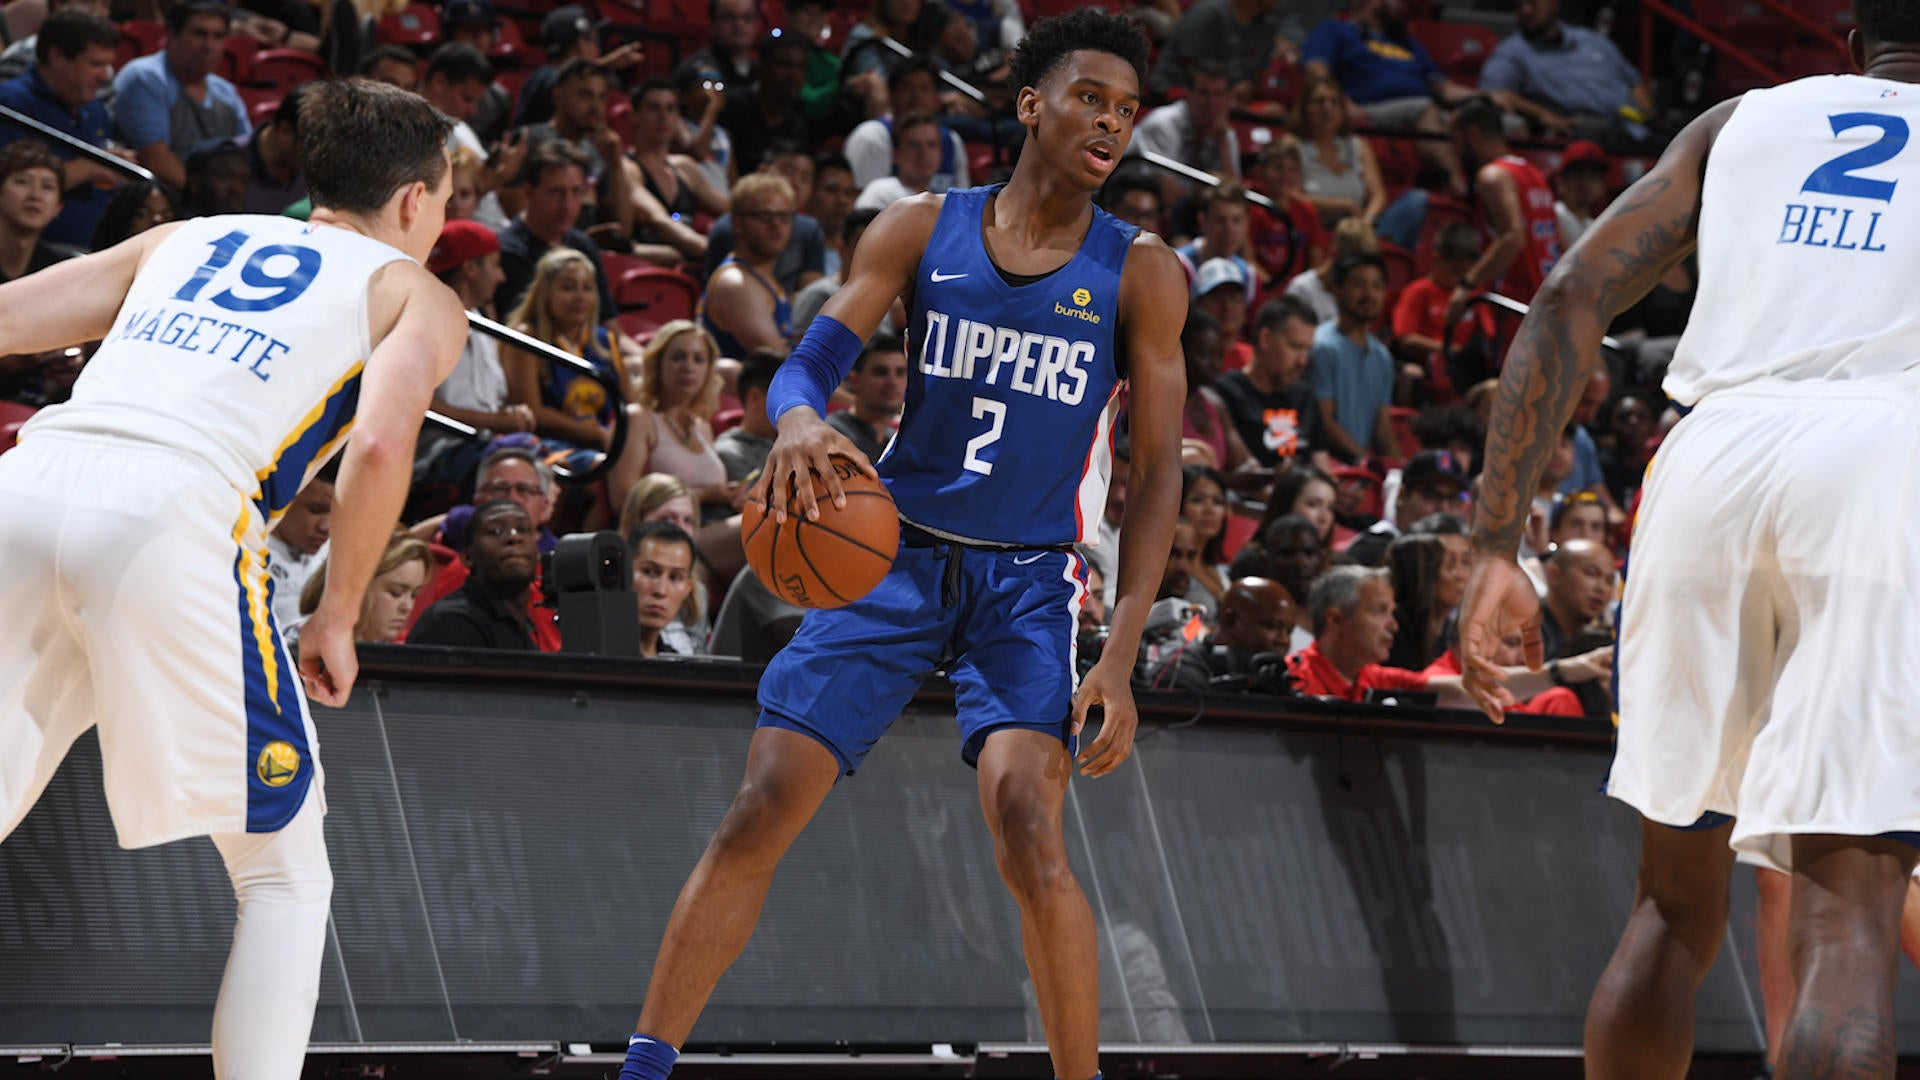 Shai Gilgeous Alexander Looks Nothing Like A Guy Who At This Time Last Year Was Ranked Outside The Top  In His High School Graduation Class With Hopes